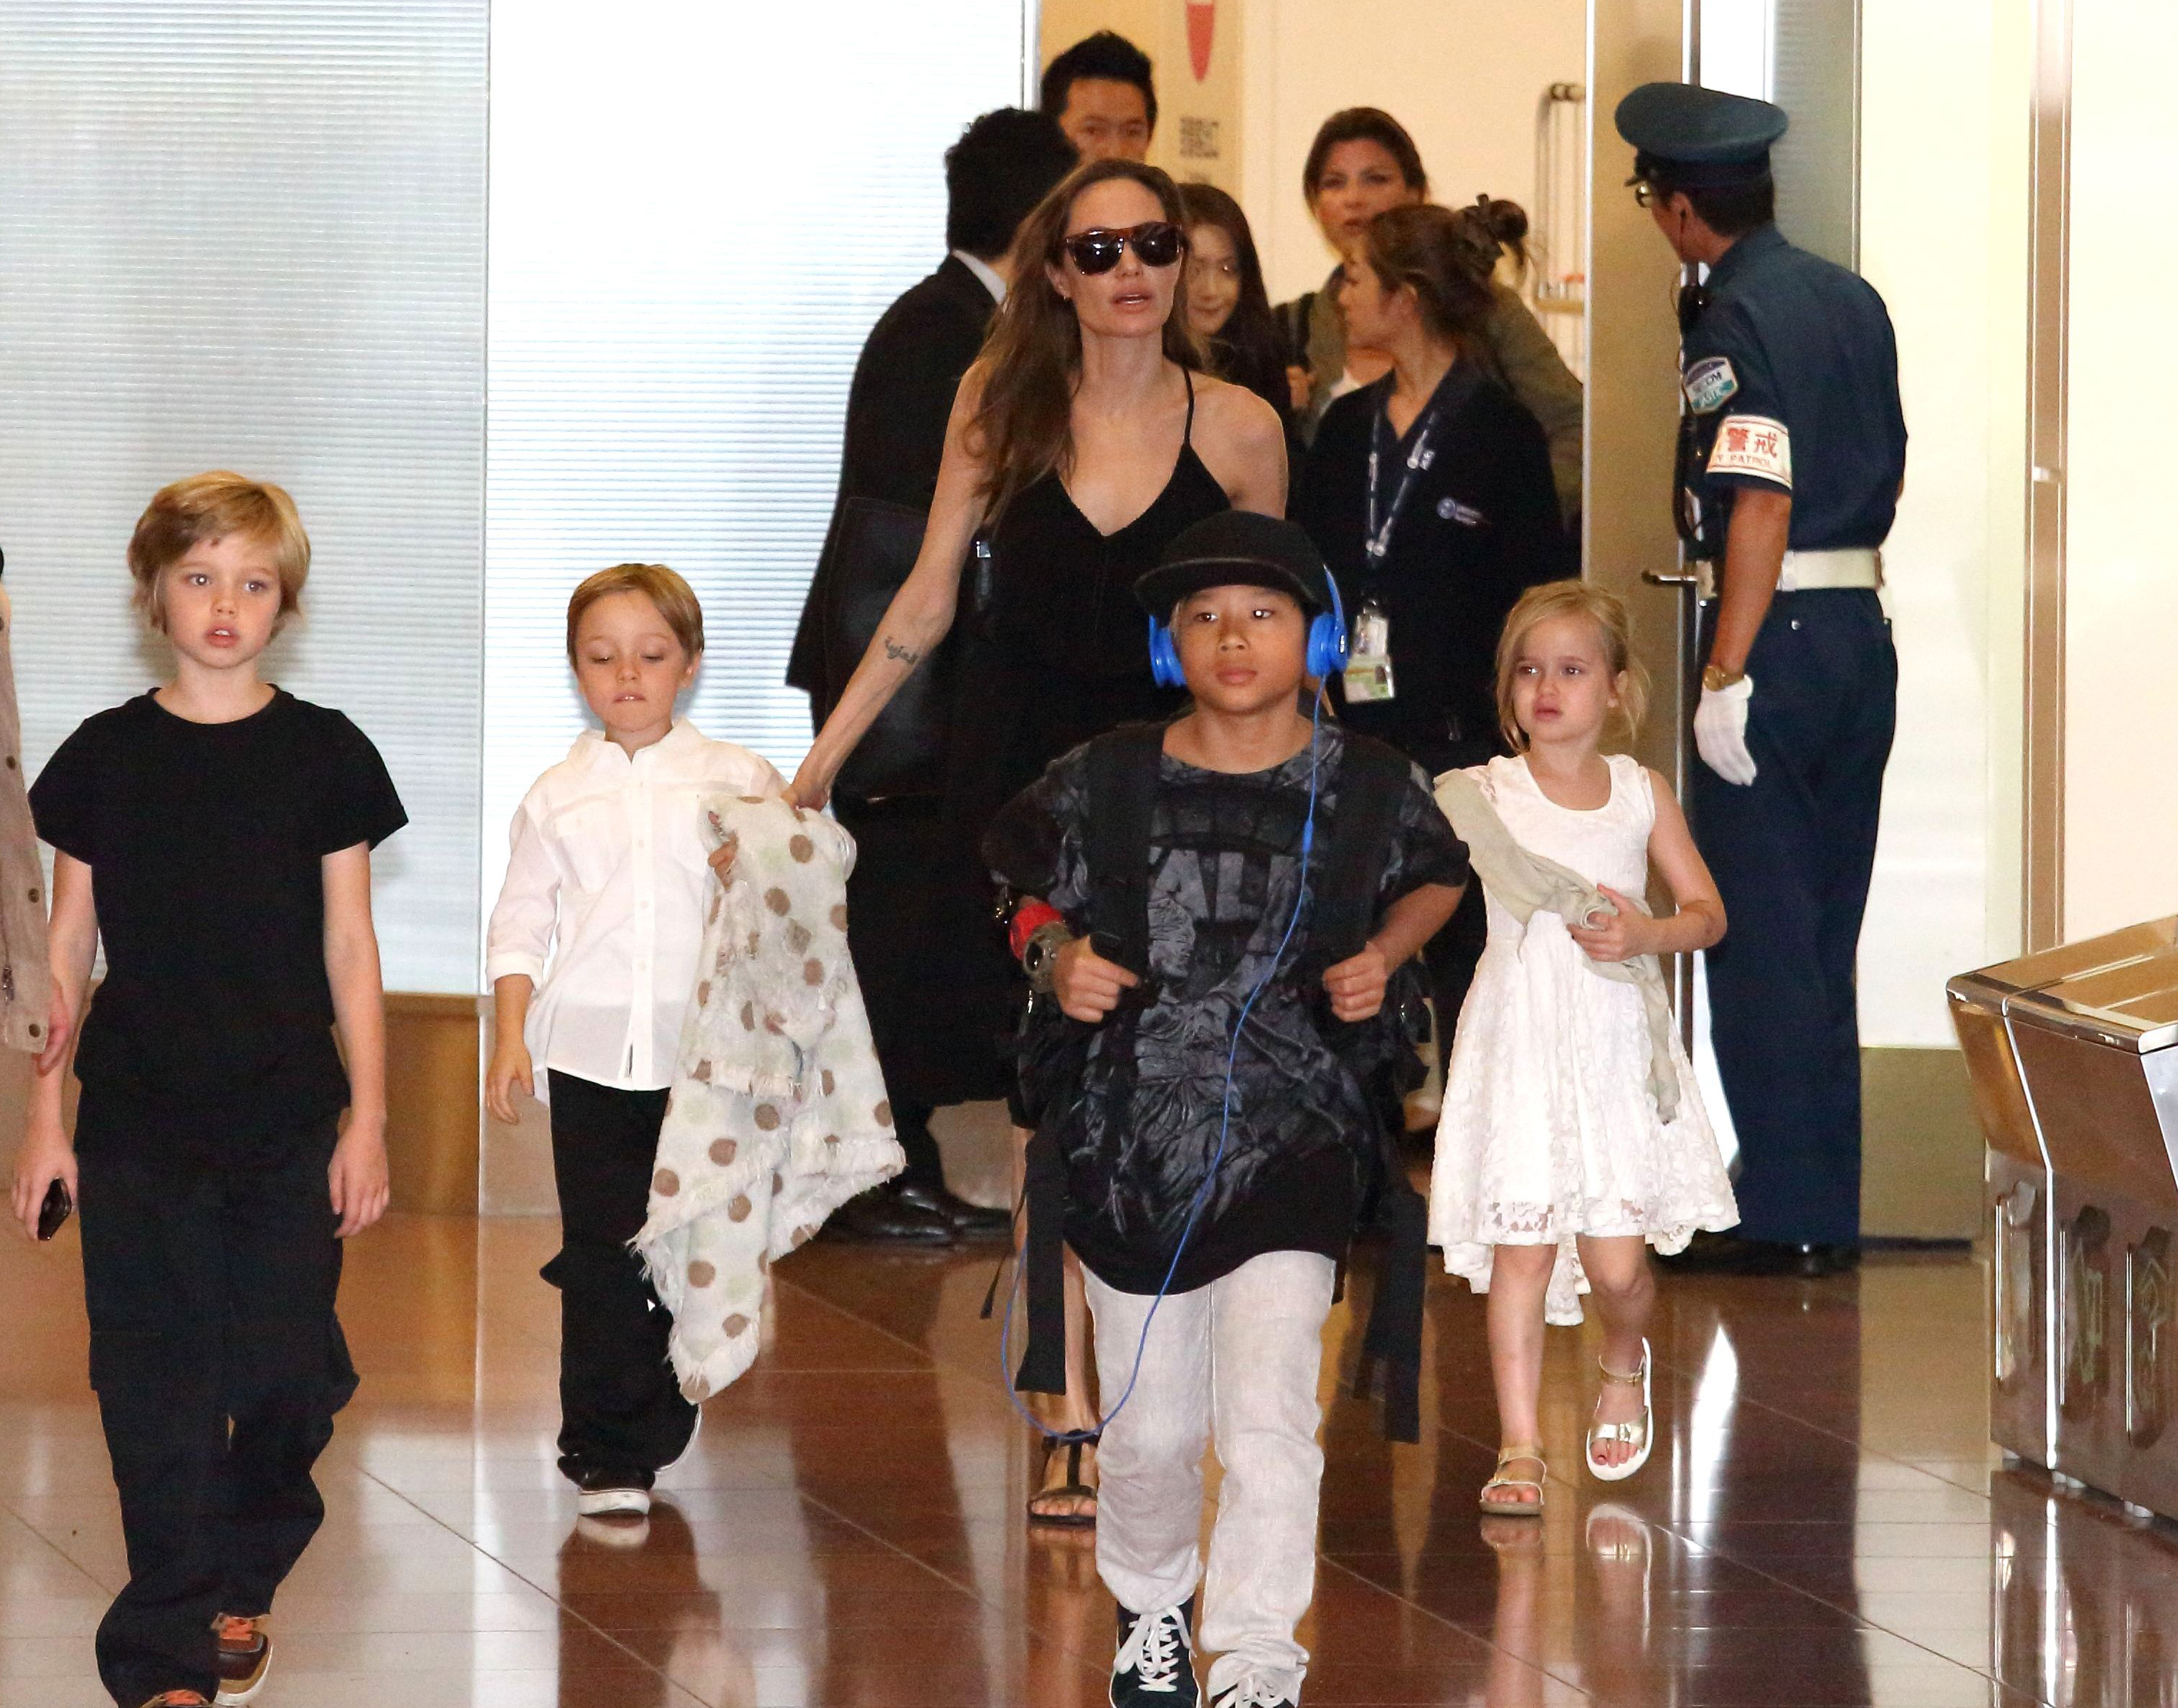 Mandatory Credit: Photo by Masatoshi Okauchi/REX/Shutterstock (3854763a) Angelina Jolie and children Shiloh Jolie-Pitt, Knox Jolie-Pitt, Pax Jolie-Pitt and Vivienne Jolie-Pitt Angelina Jolie and family at Haneda International airport, Tokyo, Japan - 21 Jun 2014 Angelina Jolie and family arrives in Japan to attend the Japanese premiere of the movie 'Maleficent', which will be released on July 5th